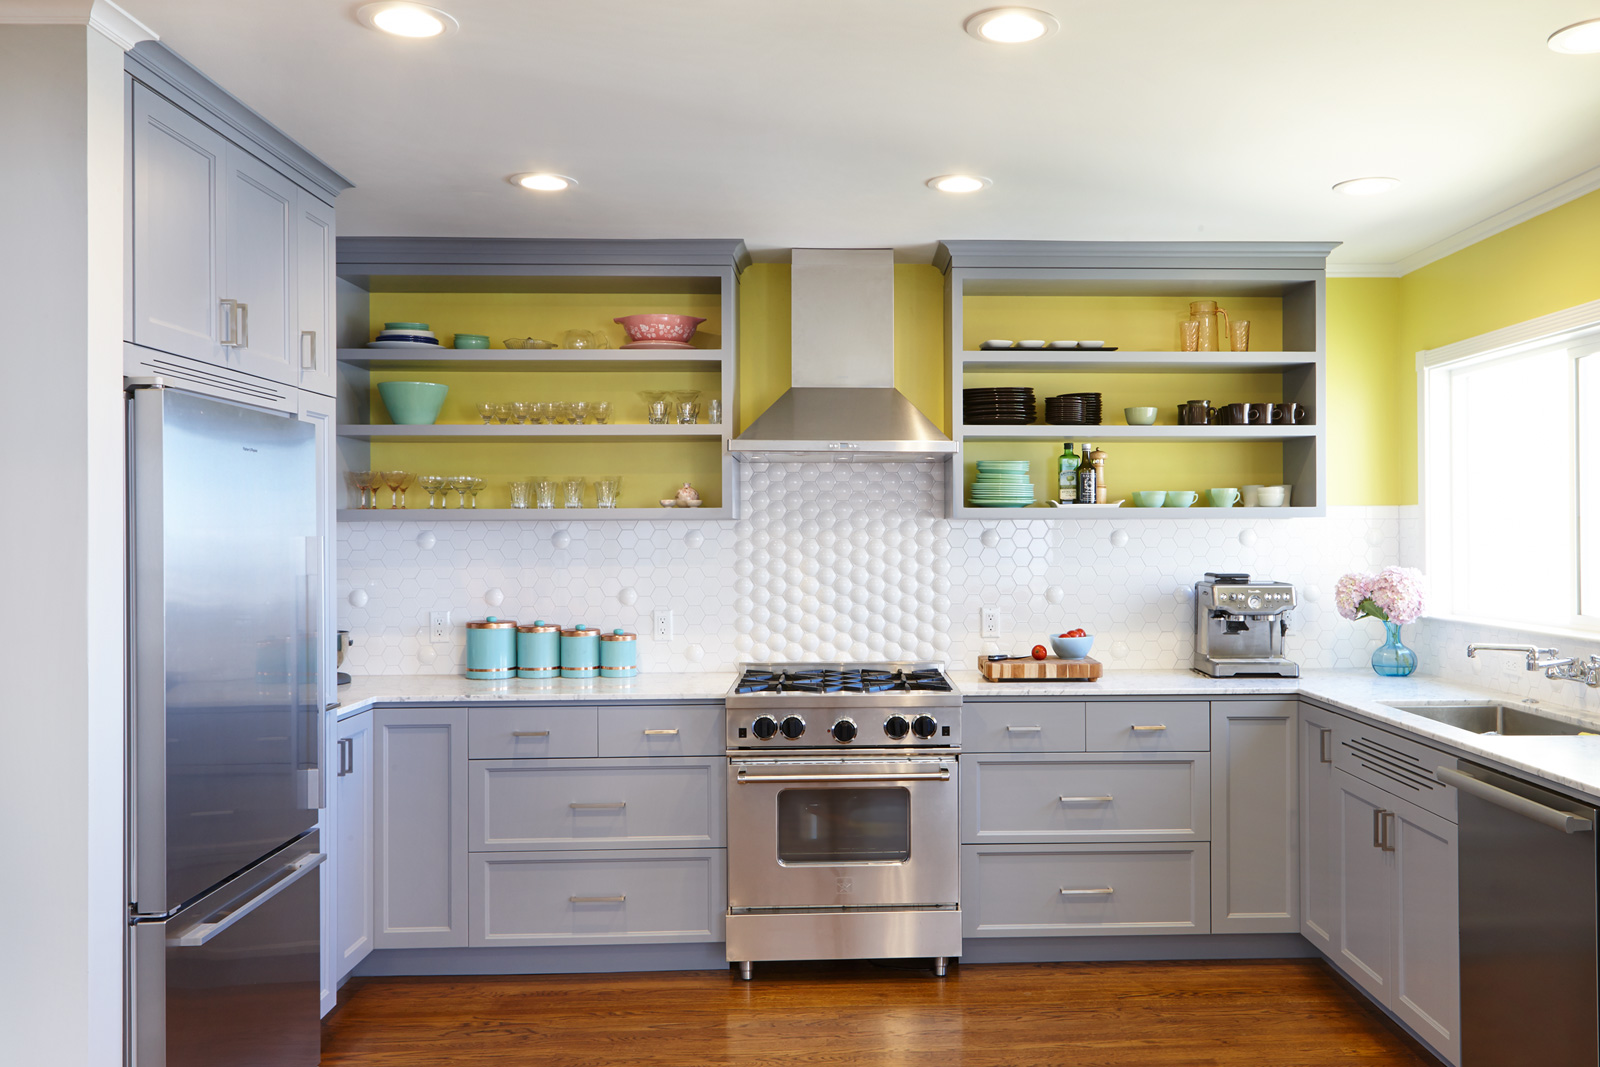 Best Paint For Kitchen Cabinets Paint For Kitchens - What kind of paint for kitchen cabinets